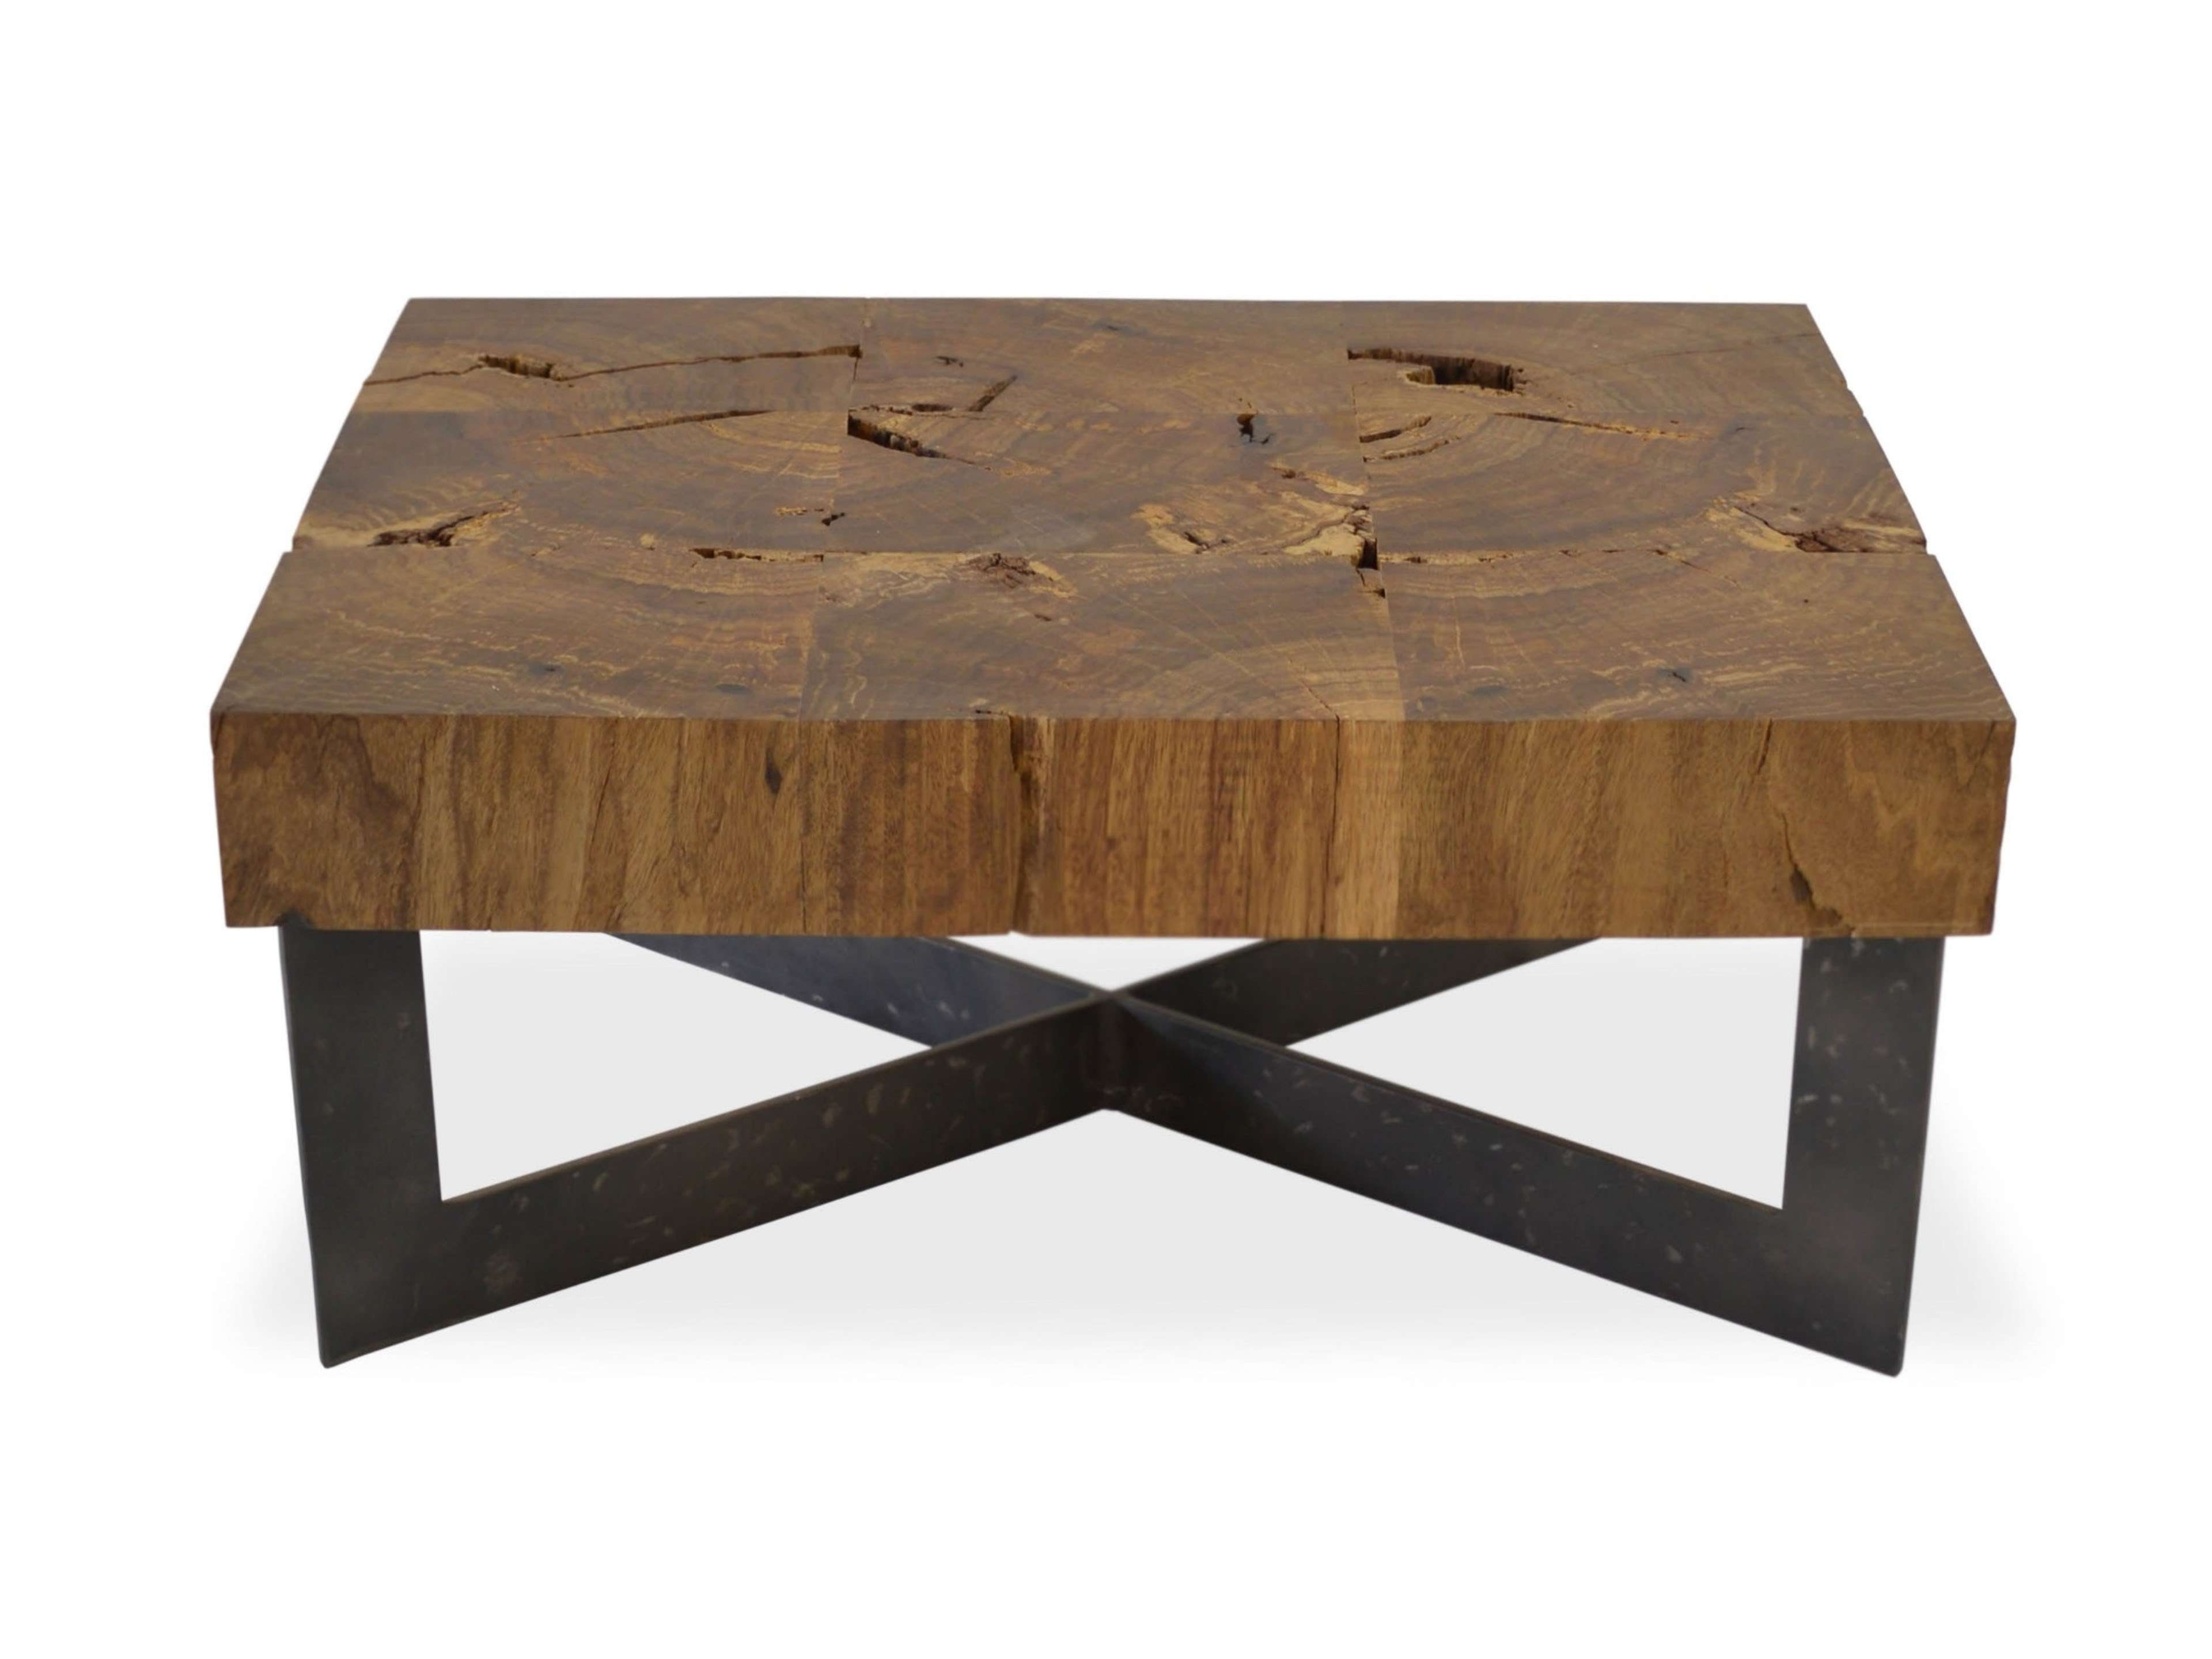 Creative Steel And Refurbished Wood Coffee Table – Youtube Regarding Best And Newest Metal And Wood Coffee Tables (View 3 of 20)